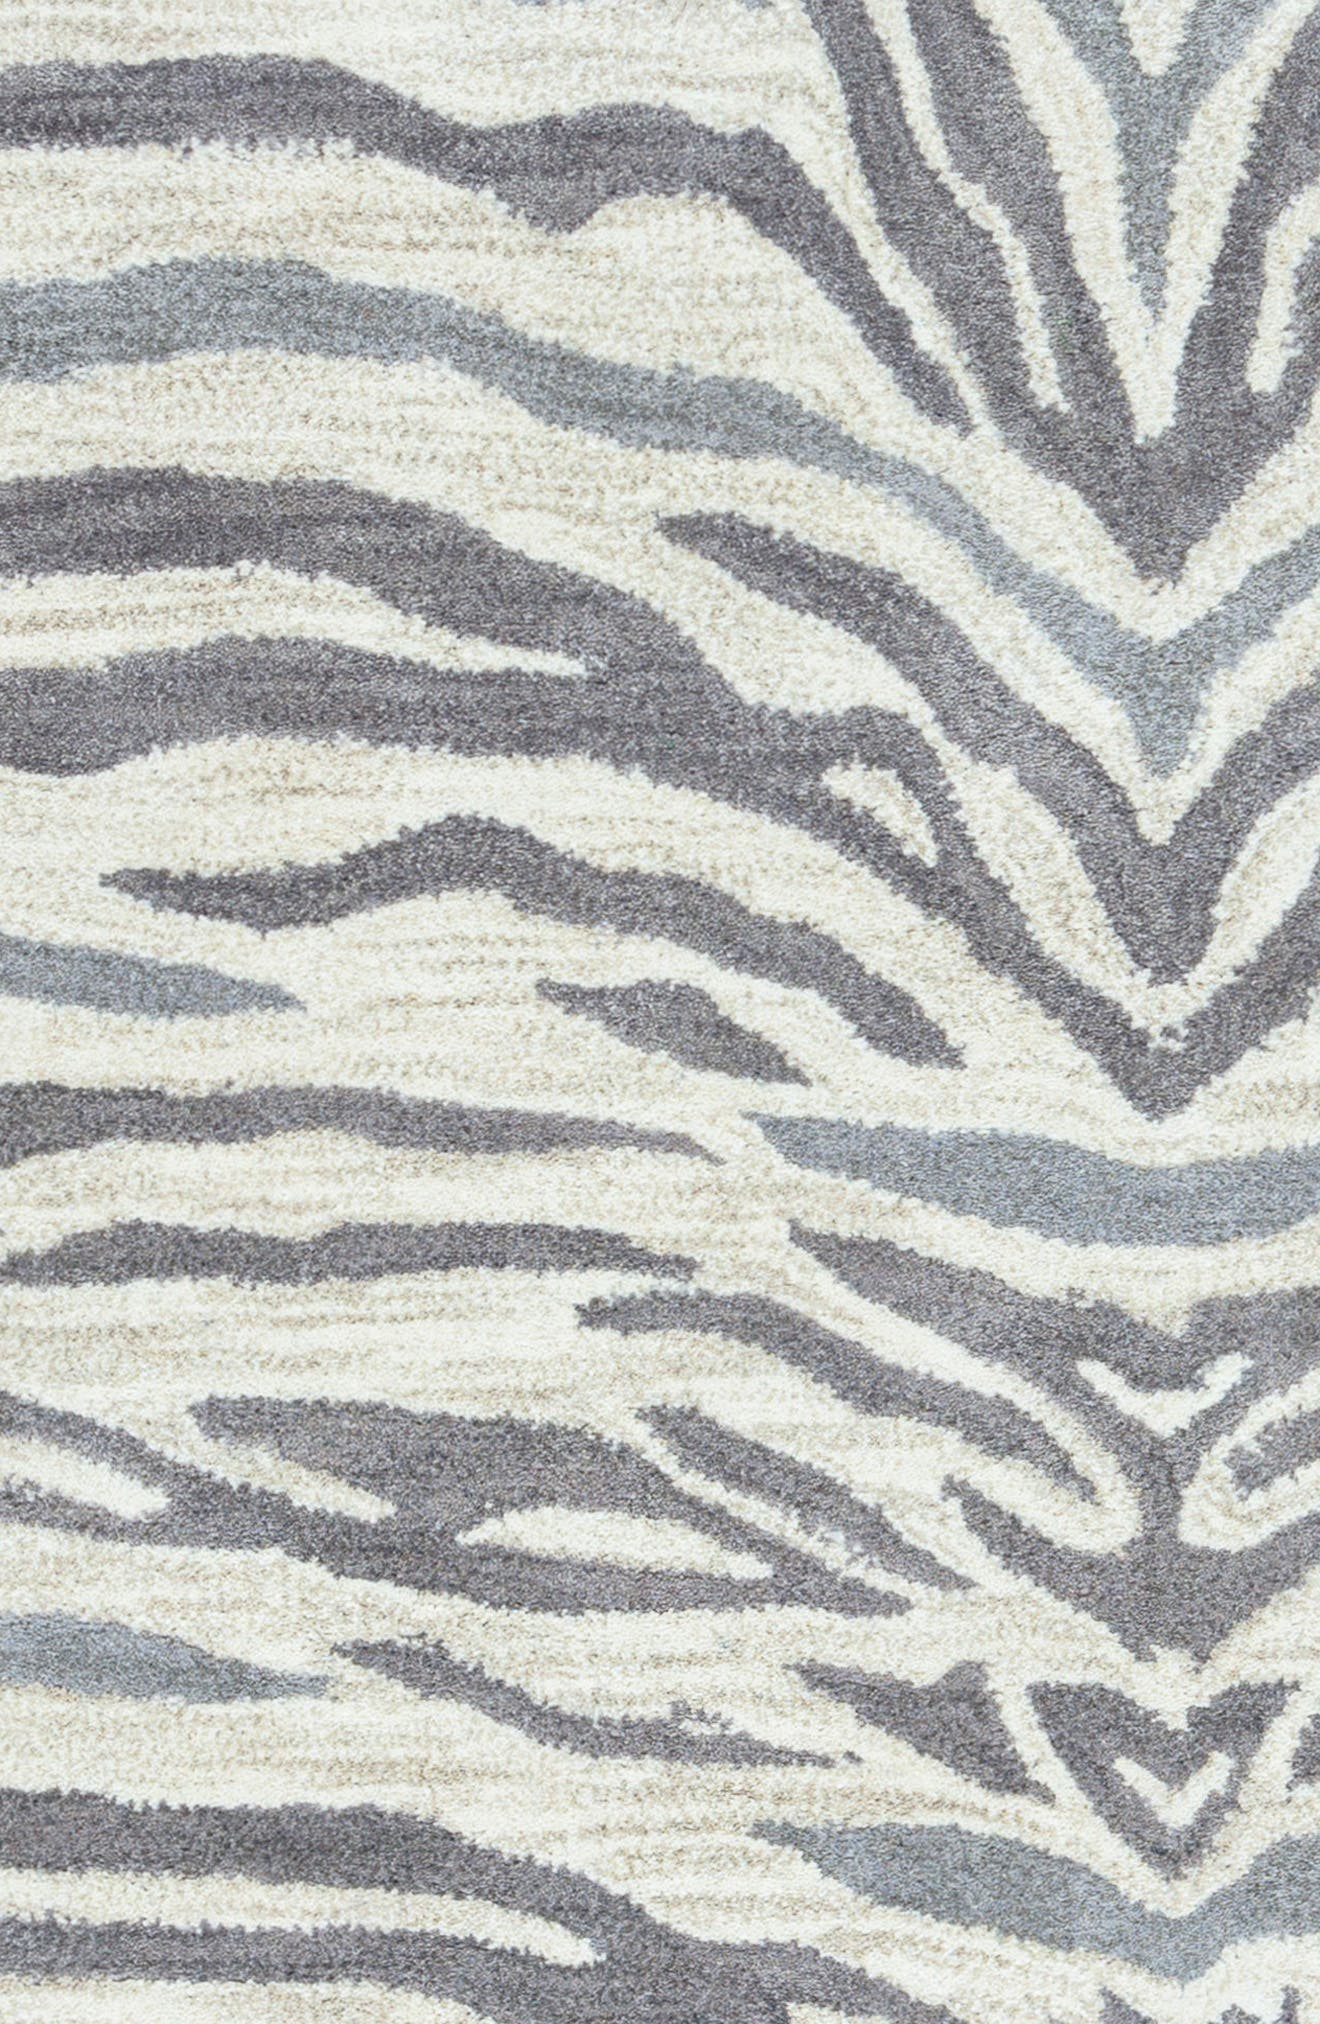 'Valintino Zebra' Hand Tufted Wool Area Rug,                             Alternate thumbnail 4, color,                             Light Grey